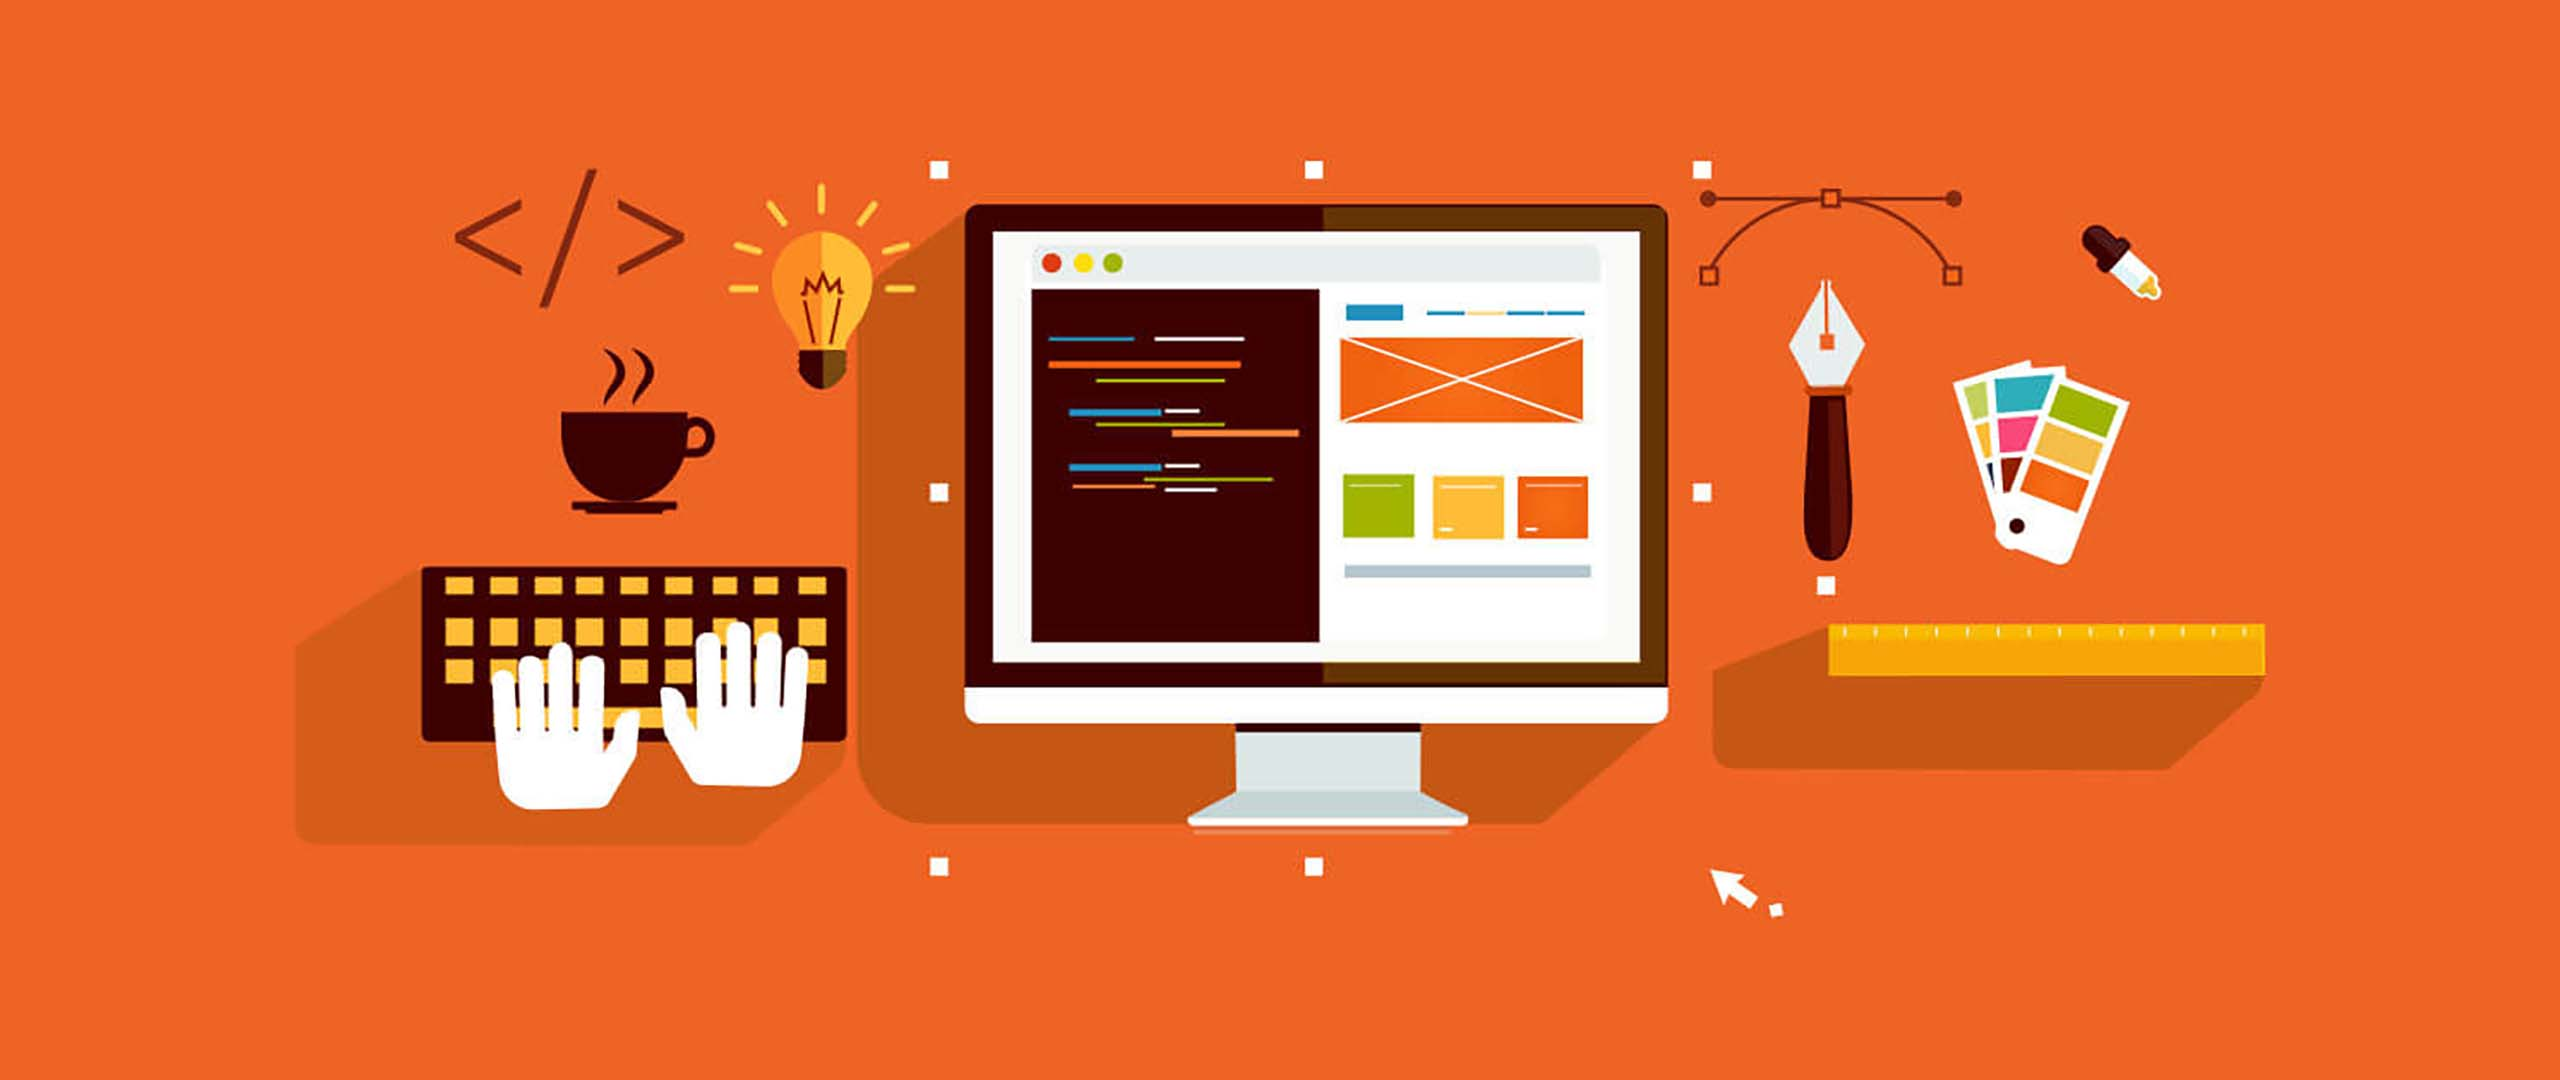 11 Web Design Terms and Definitions You Need To Know